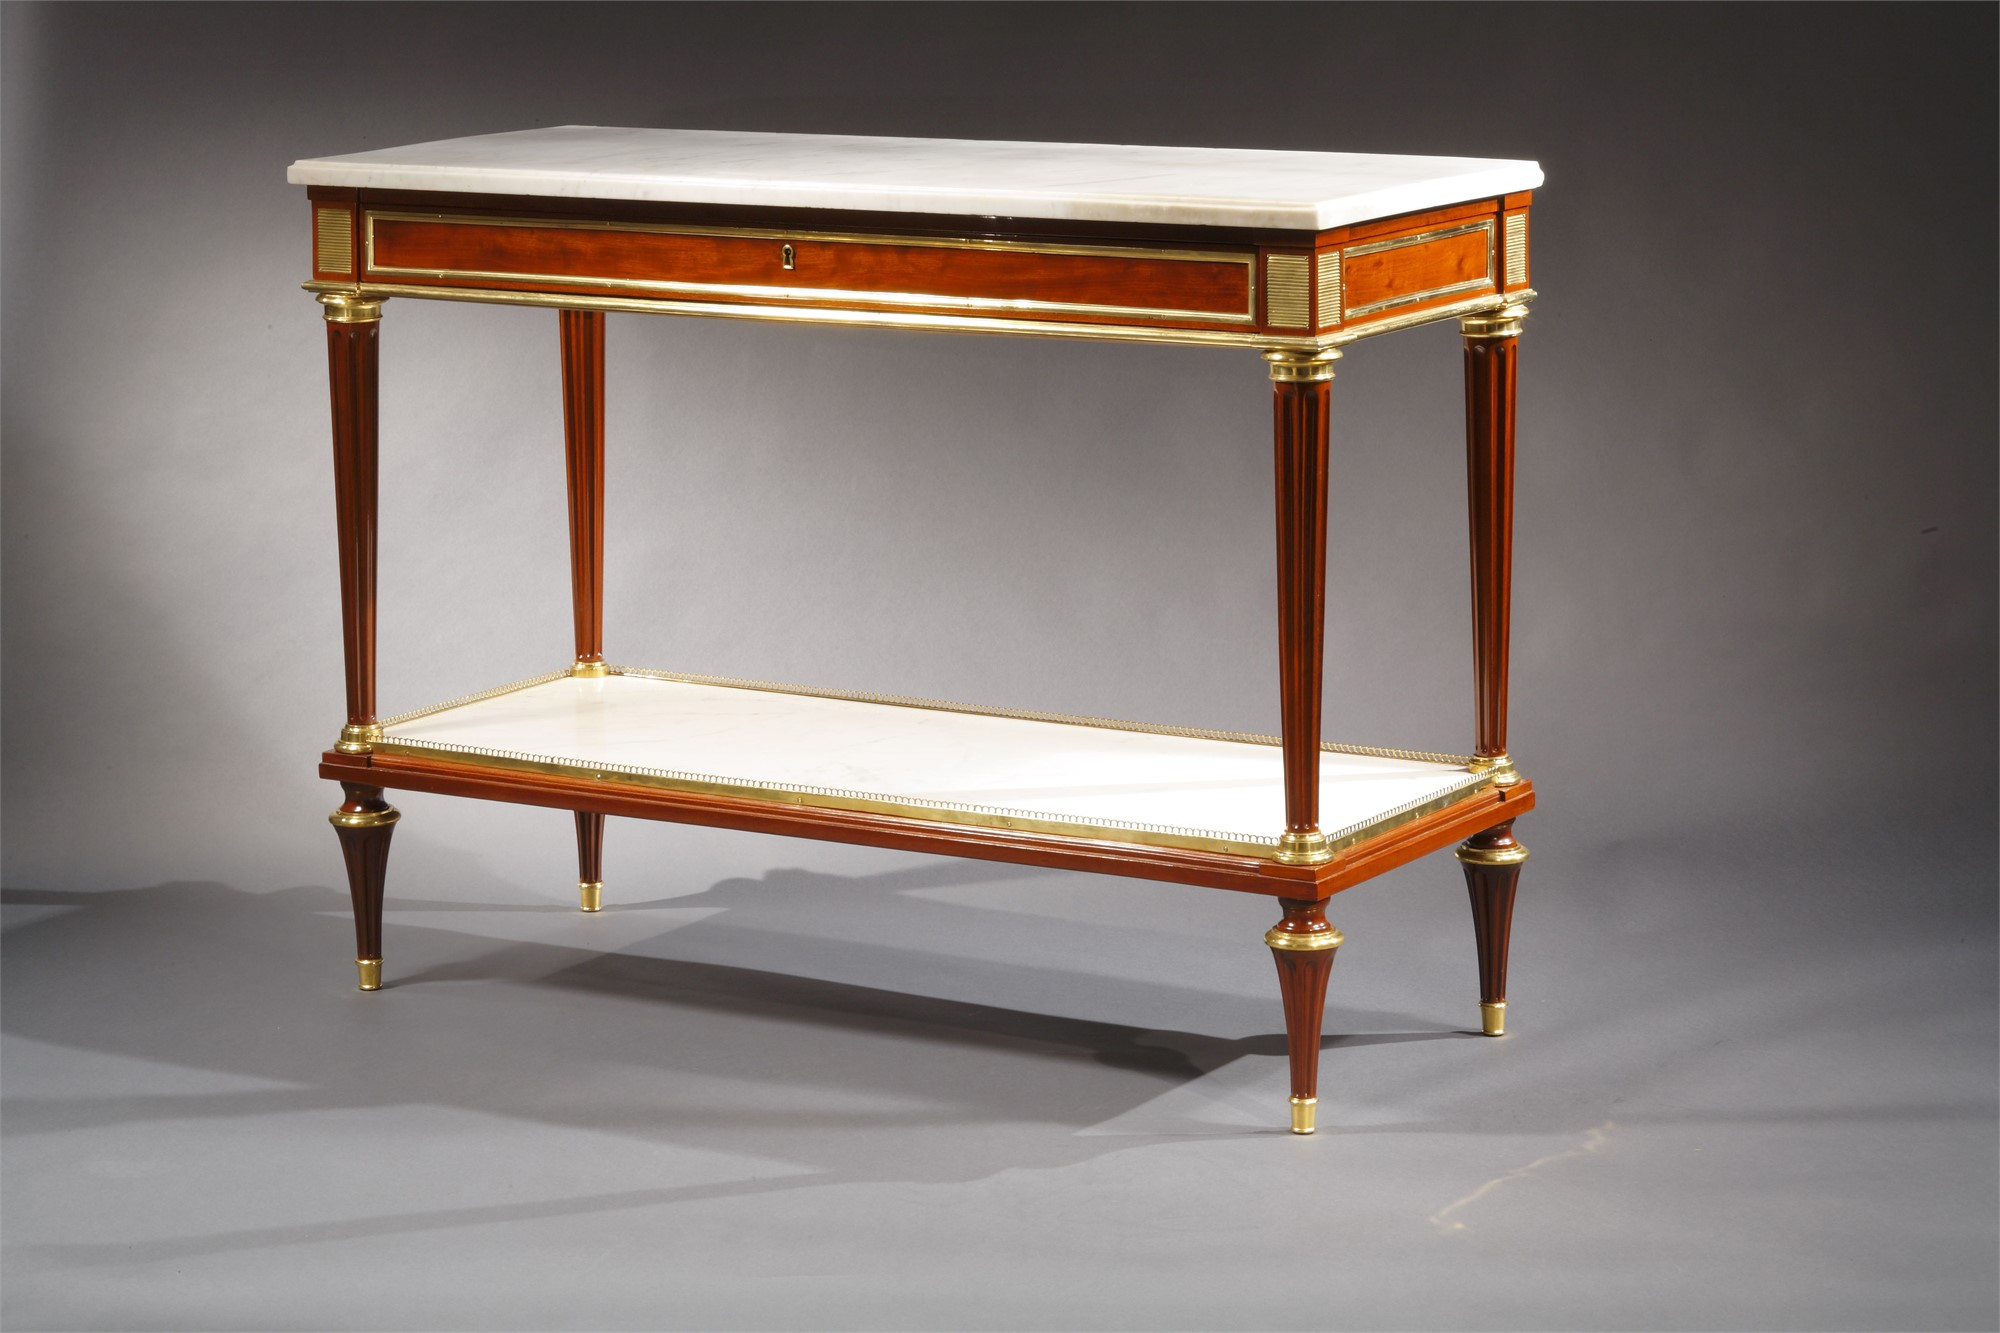 PAIR OF LOUIS XVI MAHOGANY MARBLE TOP CONSOLES ATTRIB. TO WEISWEILER by Adam Weisweiler